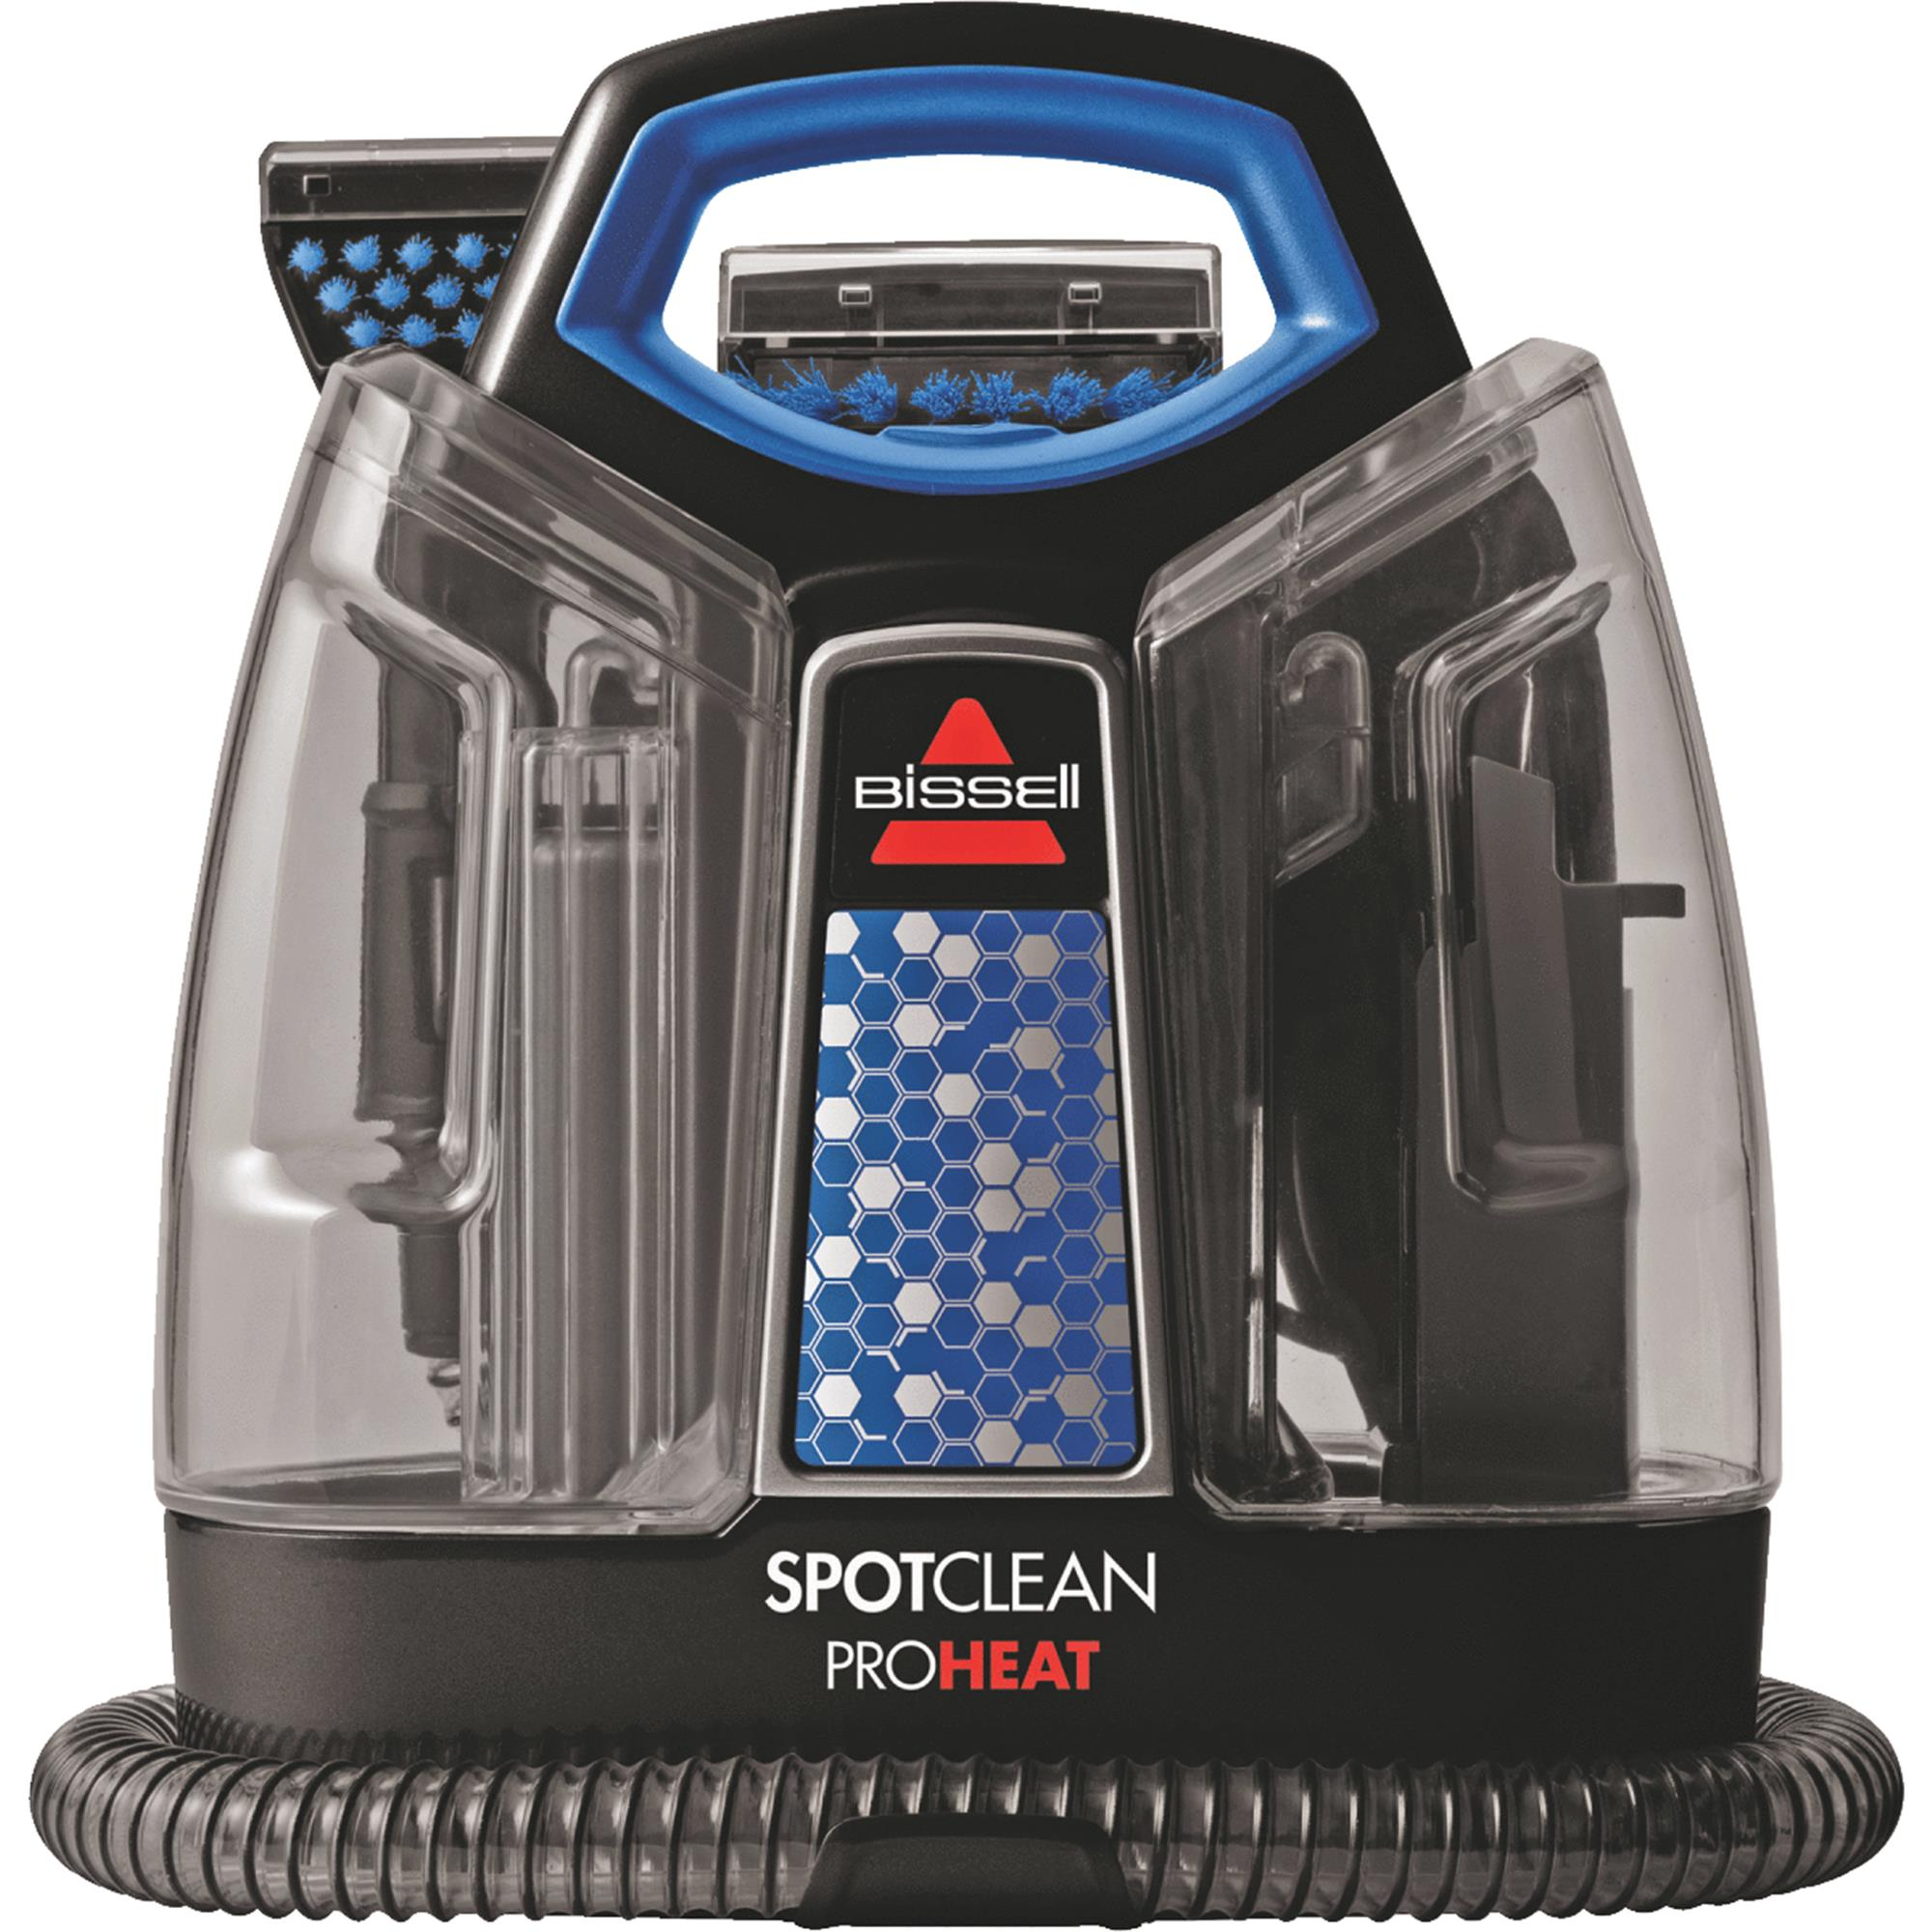 Bissell Spotclean Proheat Portable Carpet Cleaner Walmart Com